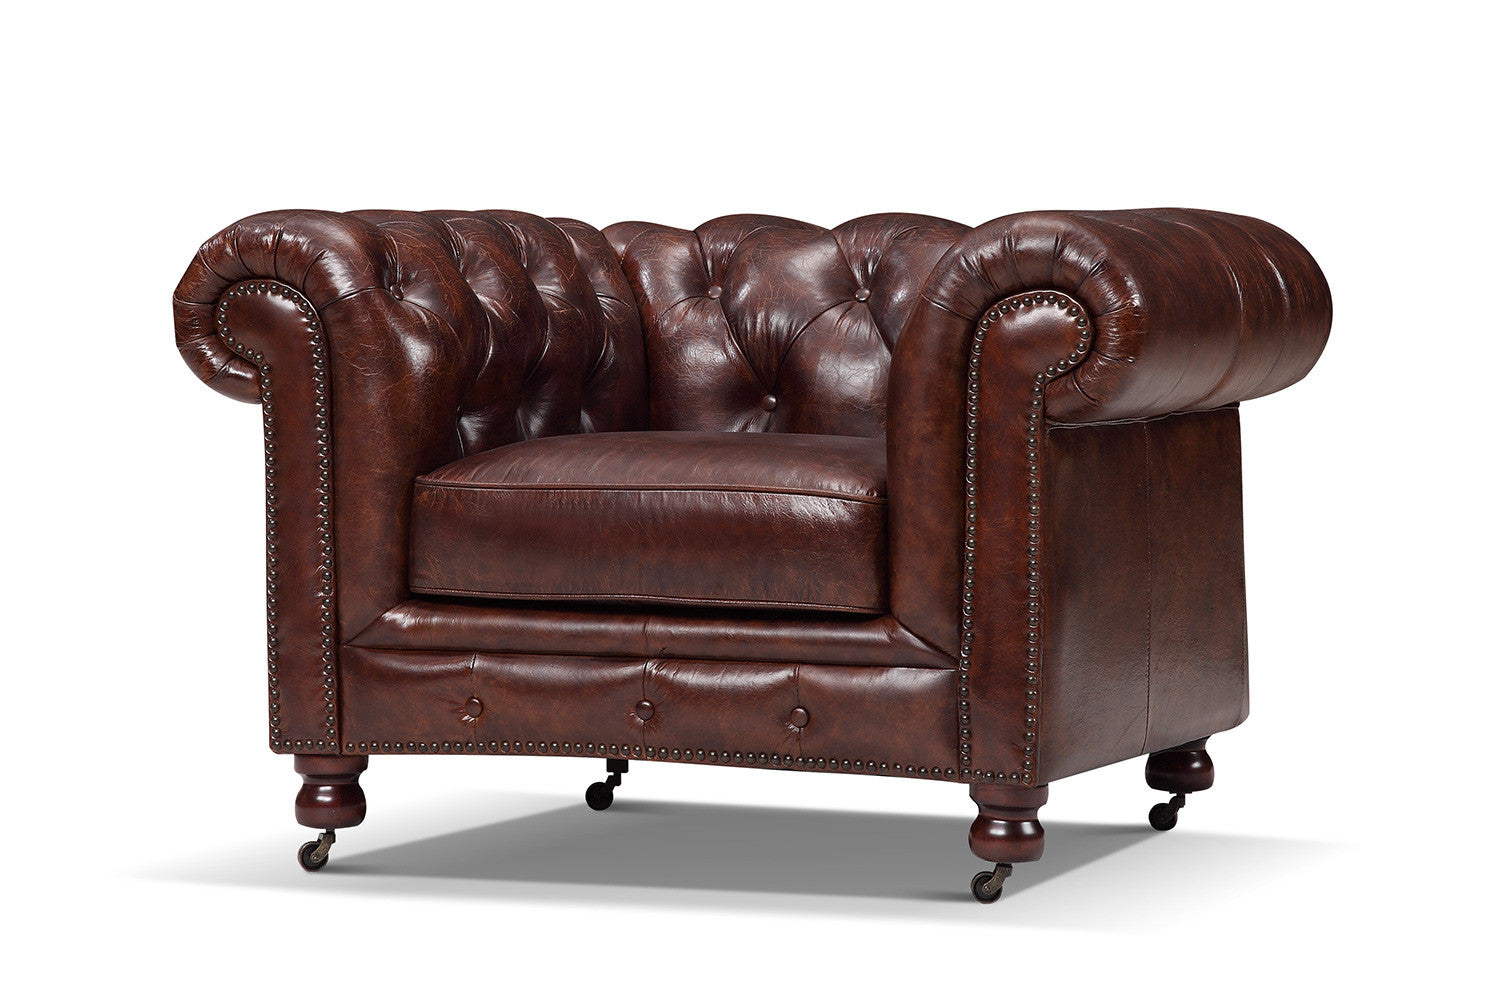 Kensington tufted armchair in antique burgundy - The Kensington Chesterfield Tufted Chair Rose And Moore